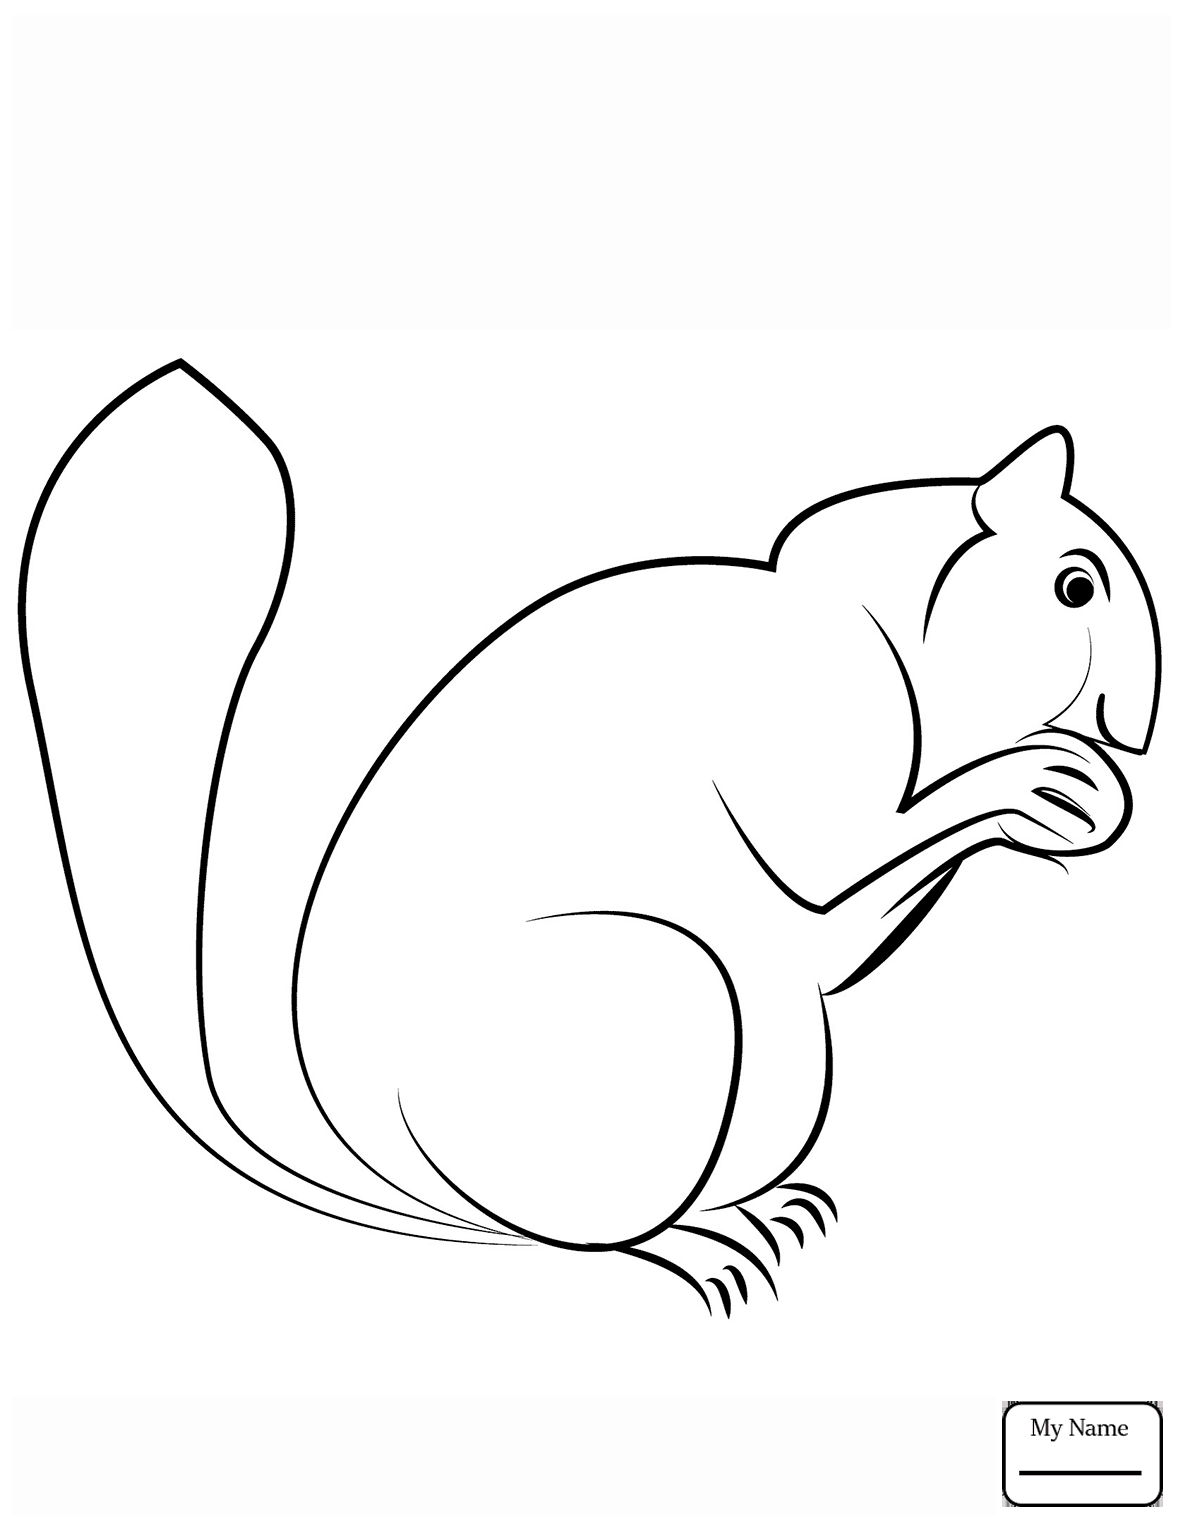 Squirrels Drawing at GetDrawings